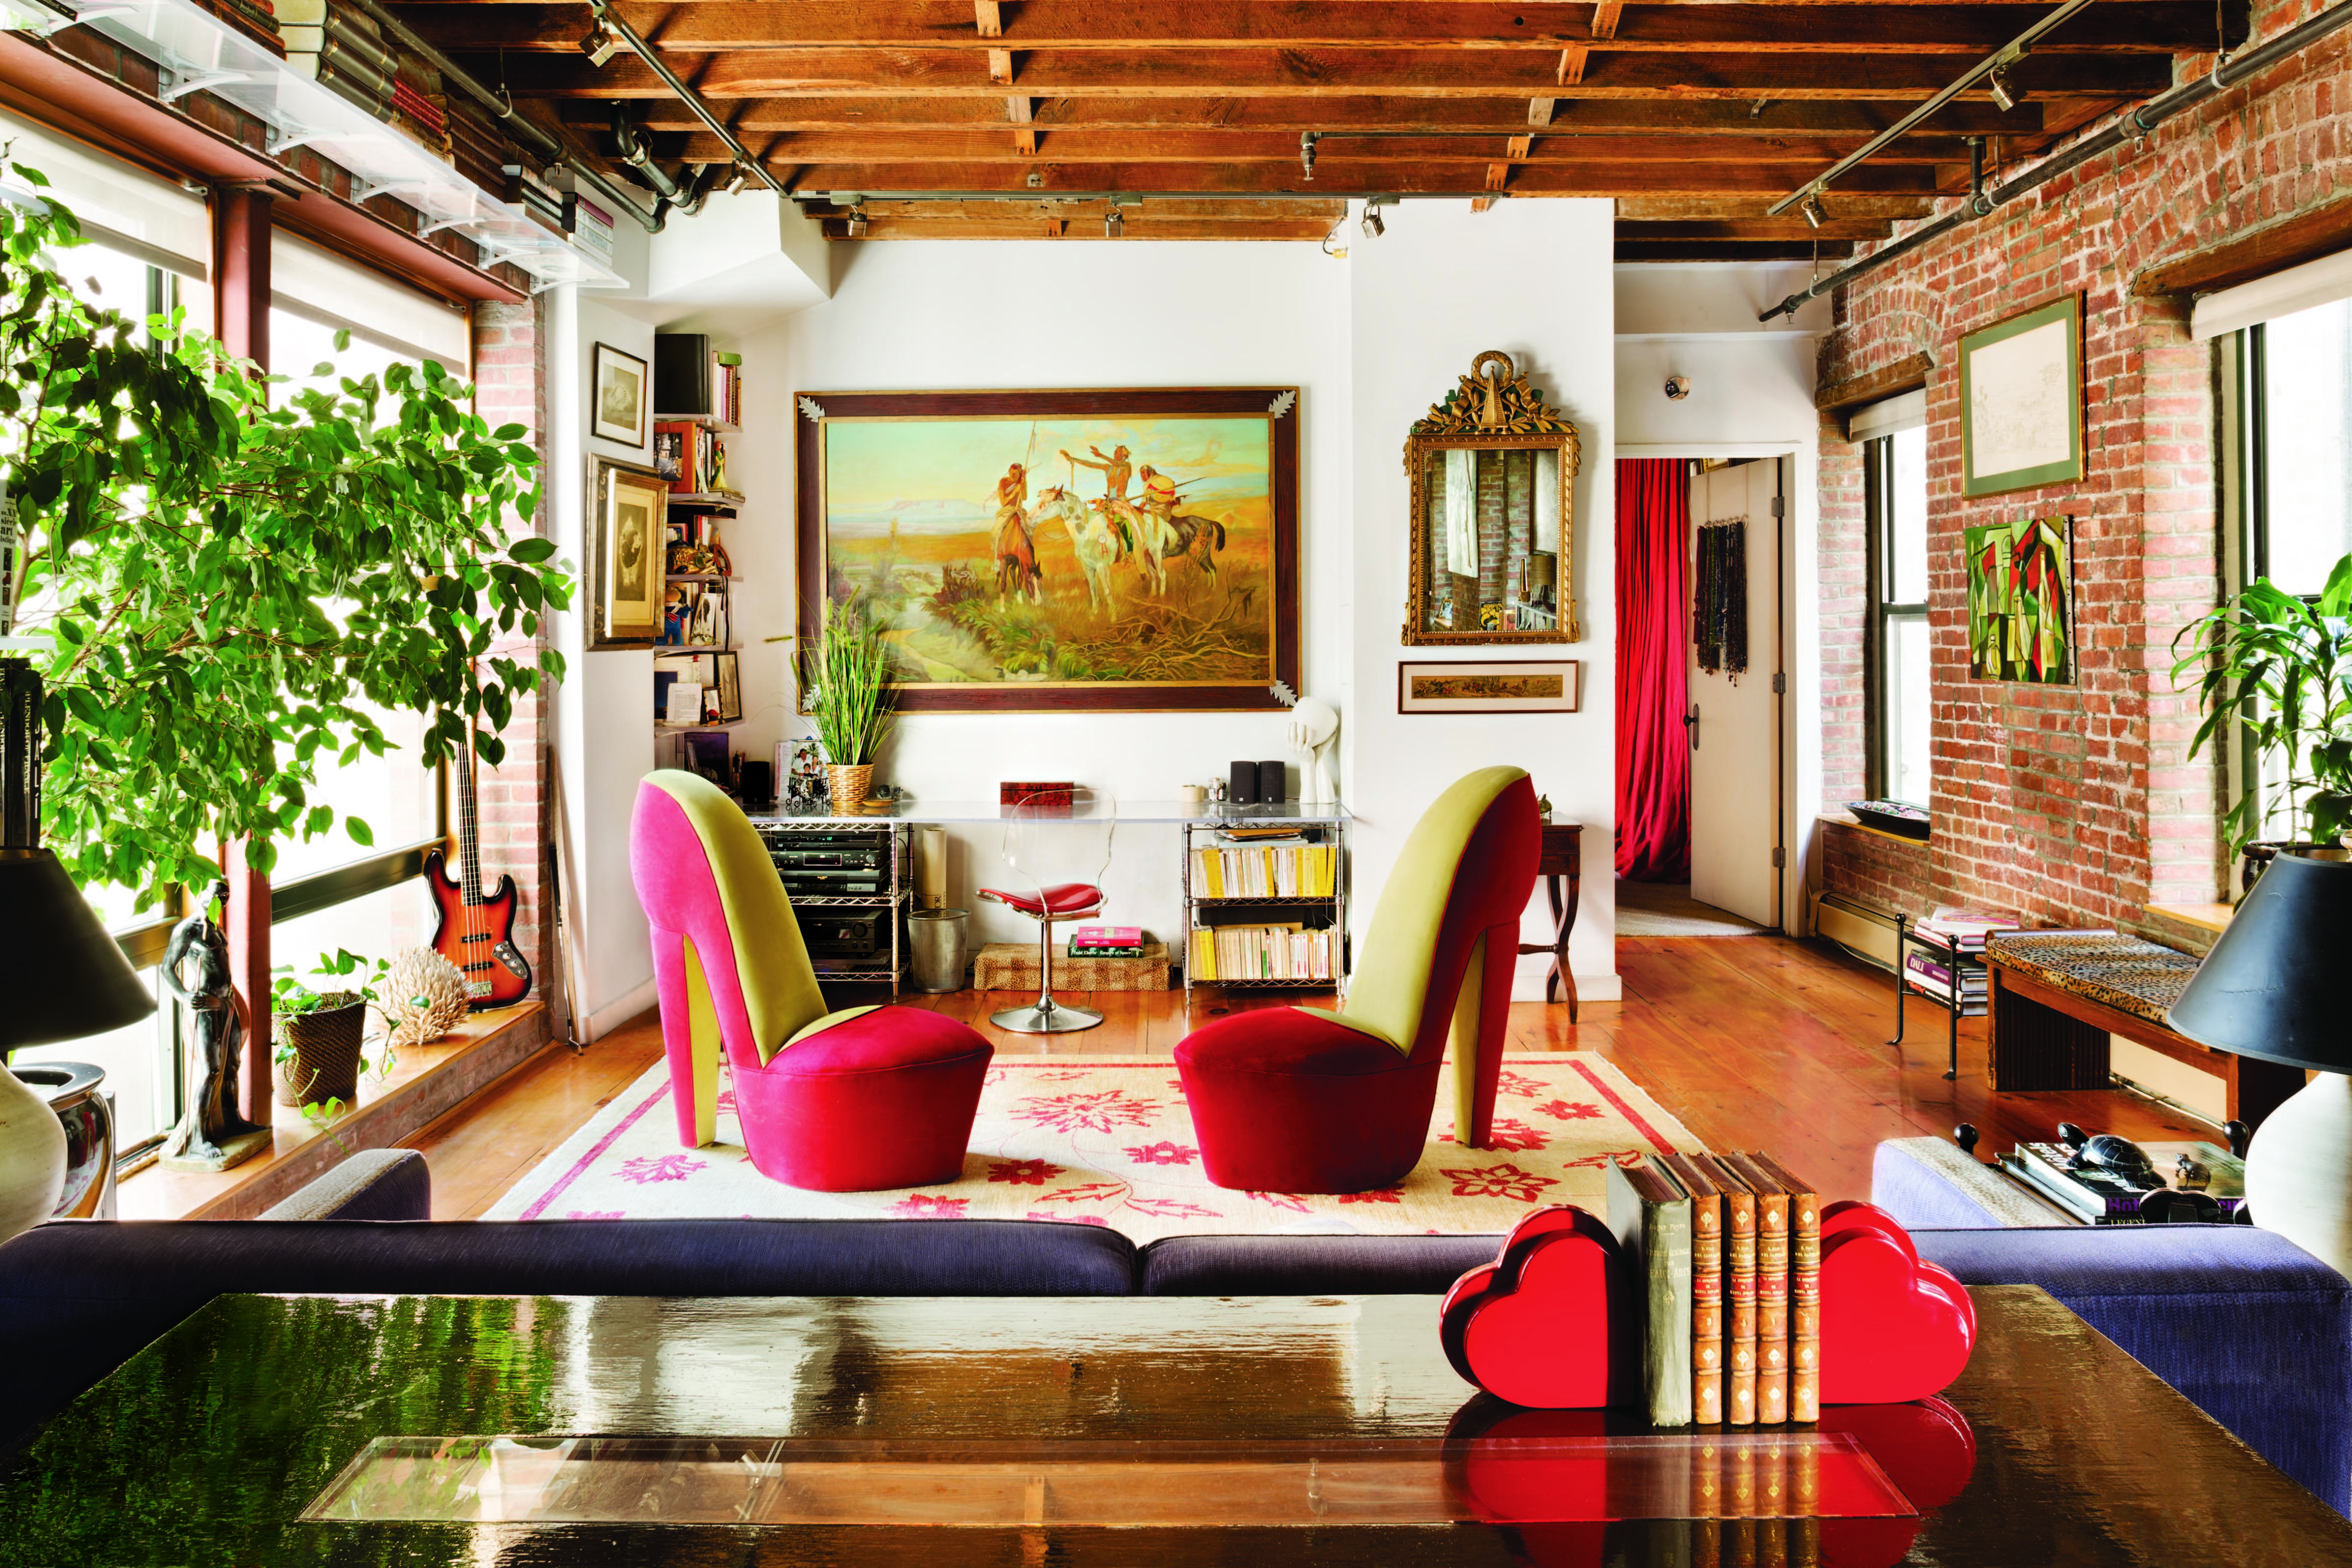 LOOK: Surreal Decor Meets An 1800s Carriage House